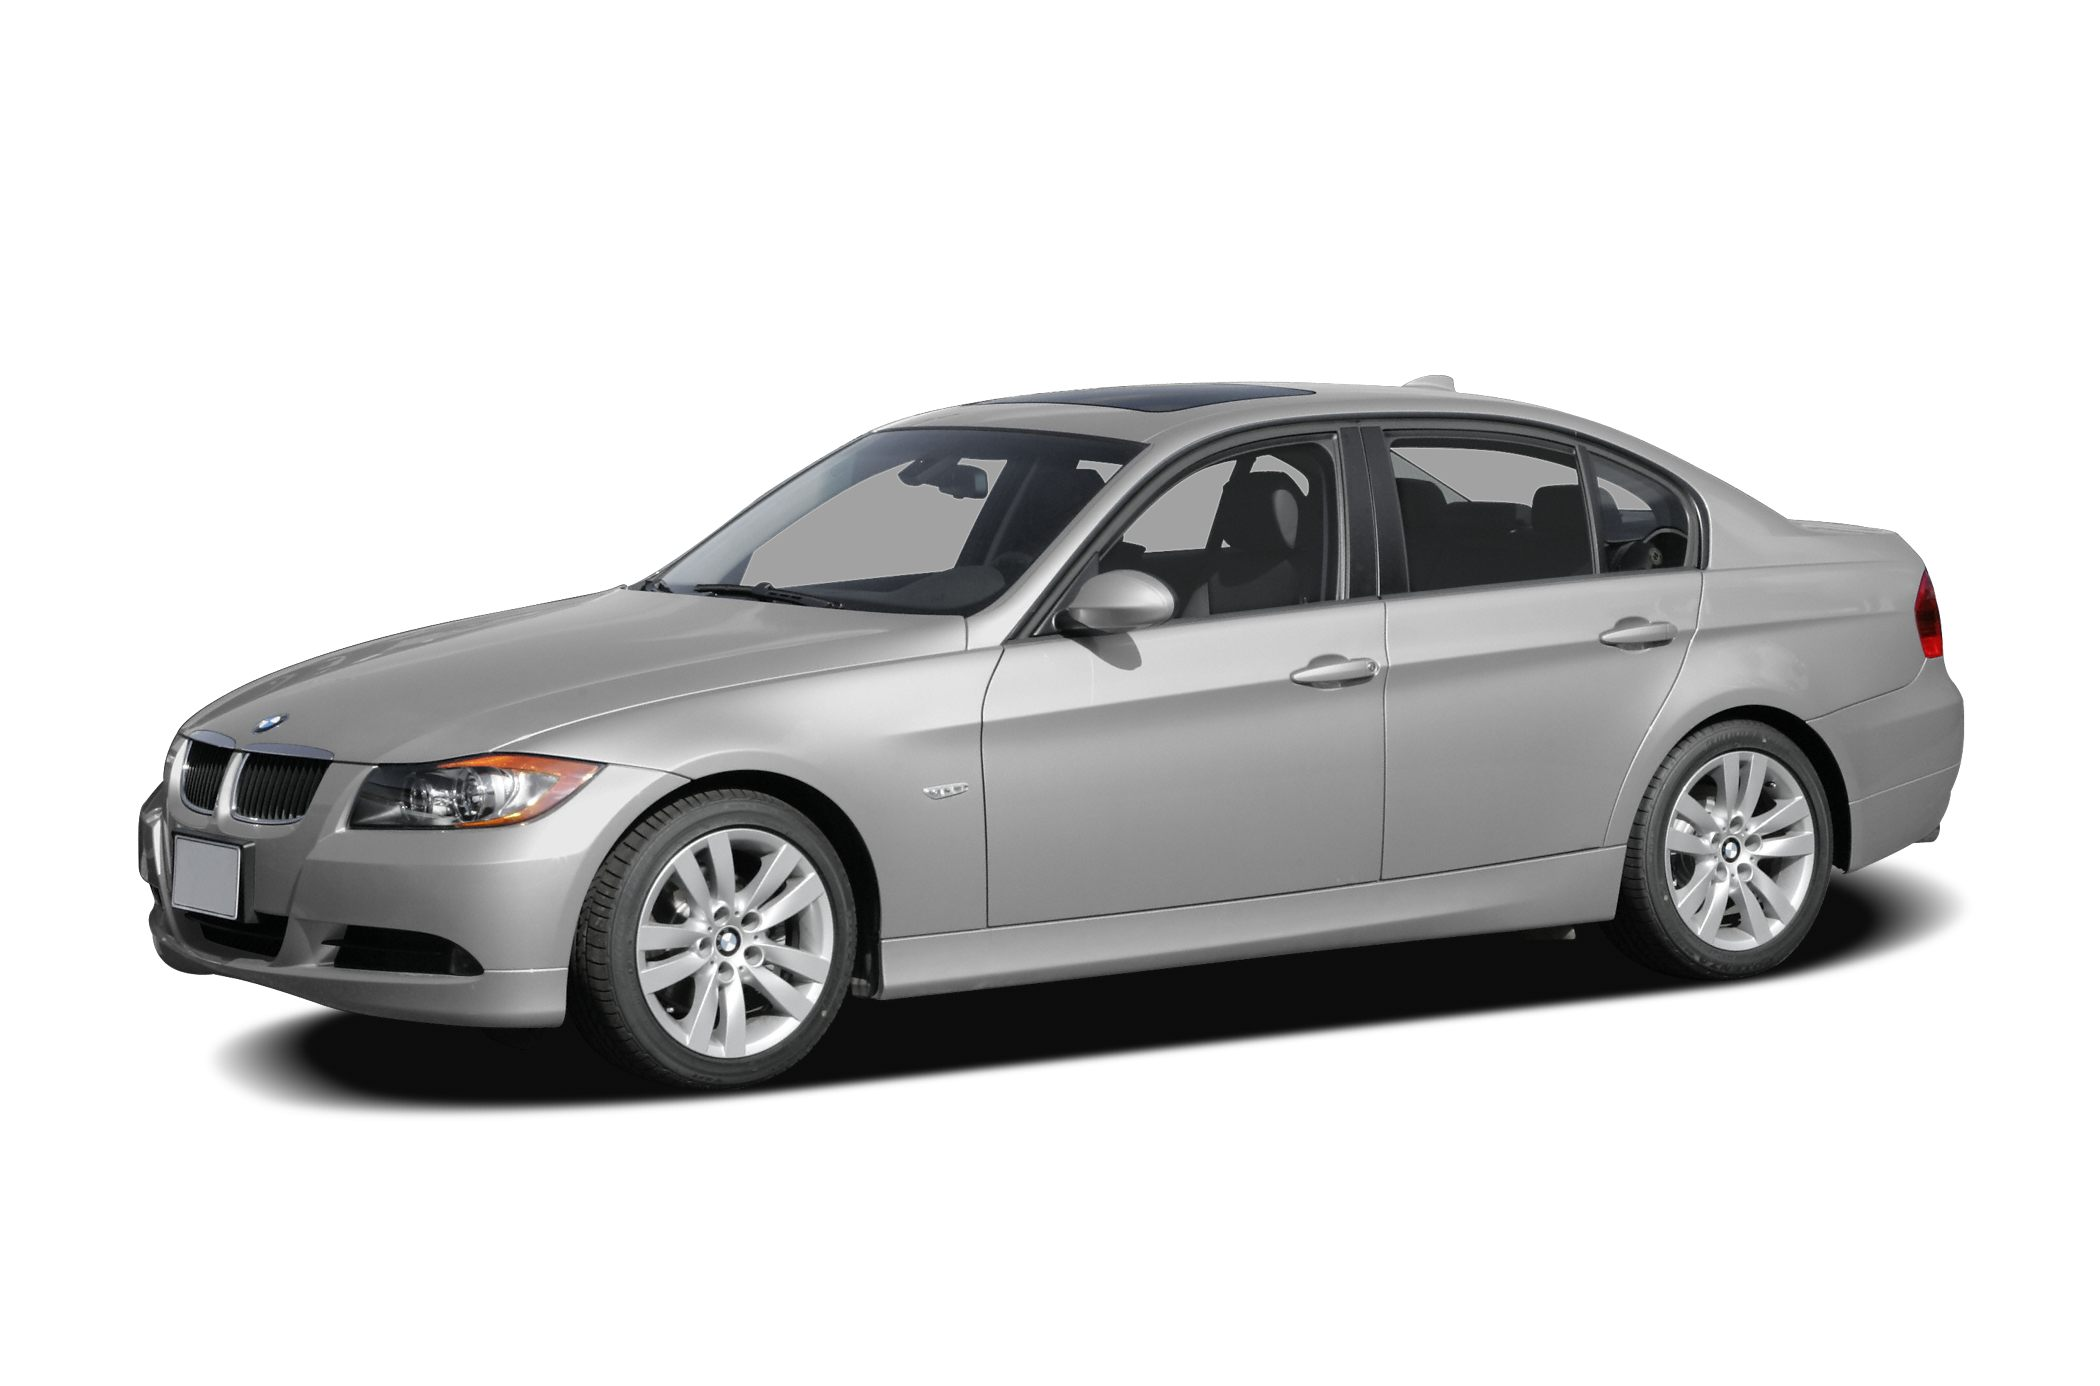 2008 BMW 335 I Sedan for sale in Carrollton for $15,500 with 93,485 miles